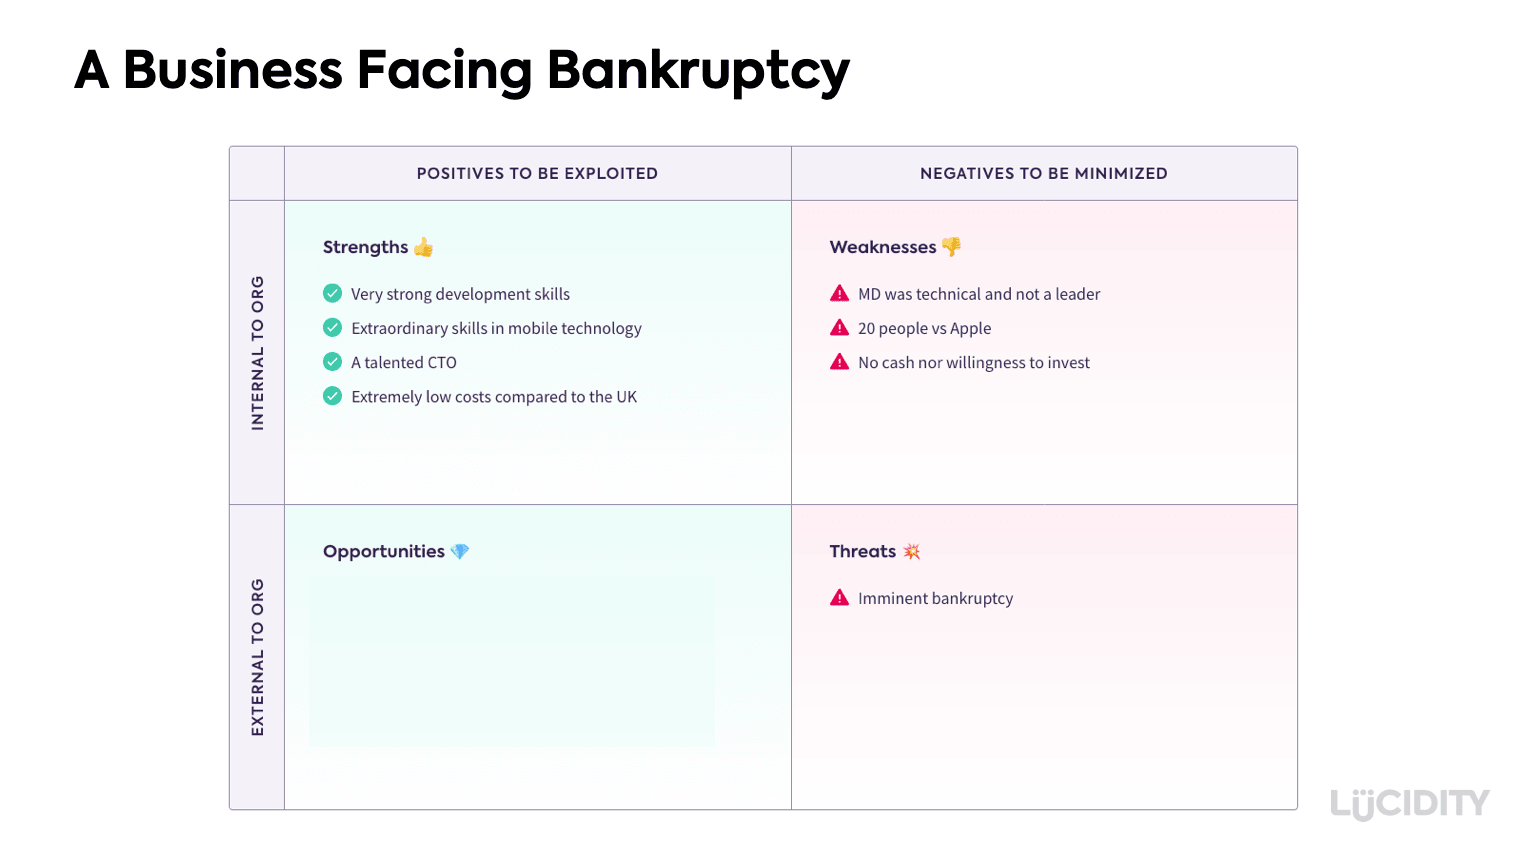 SWOT Analysis for a business facing bankruptcy